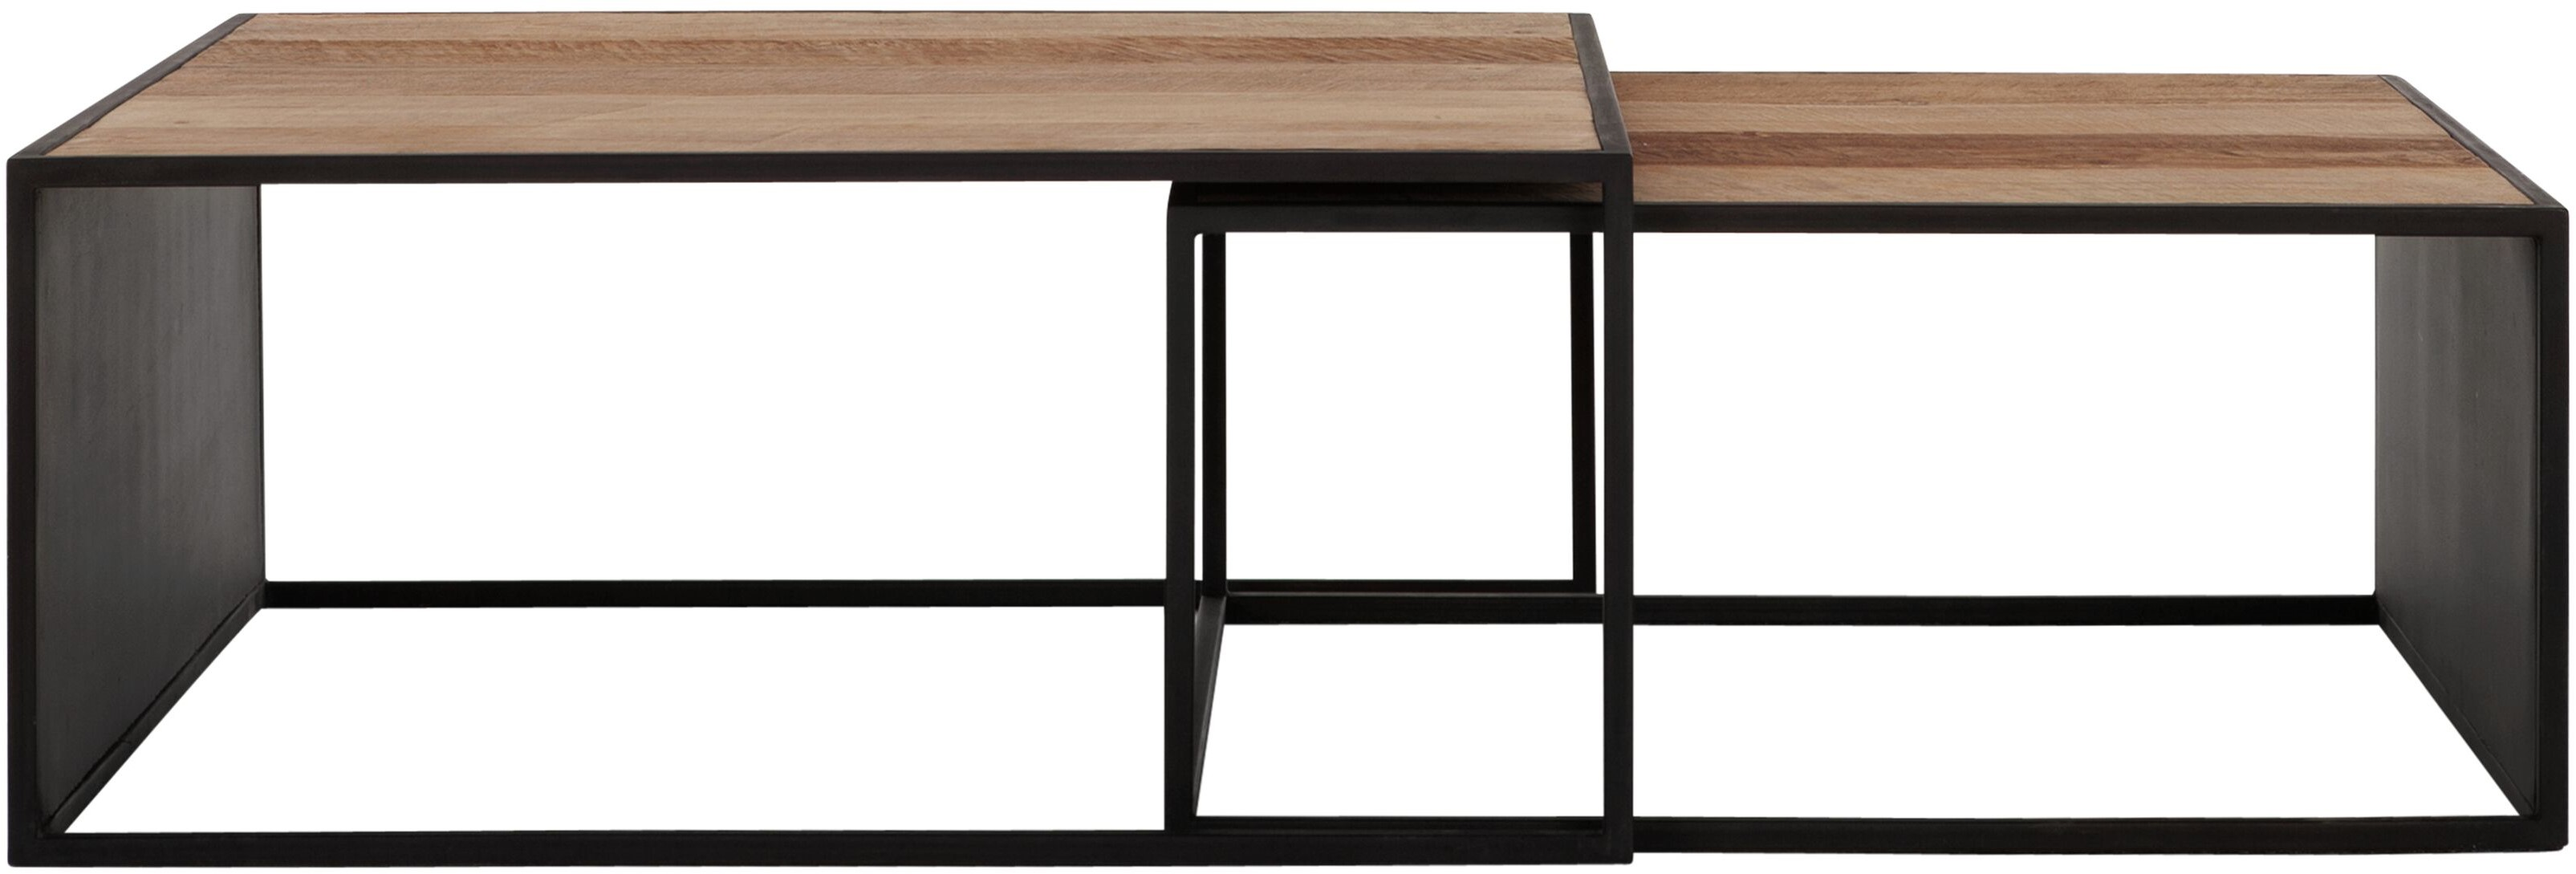 Dtp Home Cosmo Coffee Table Square